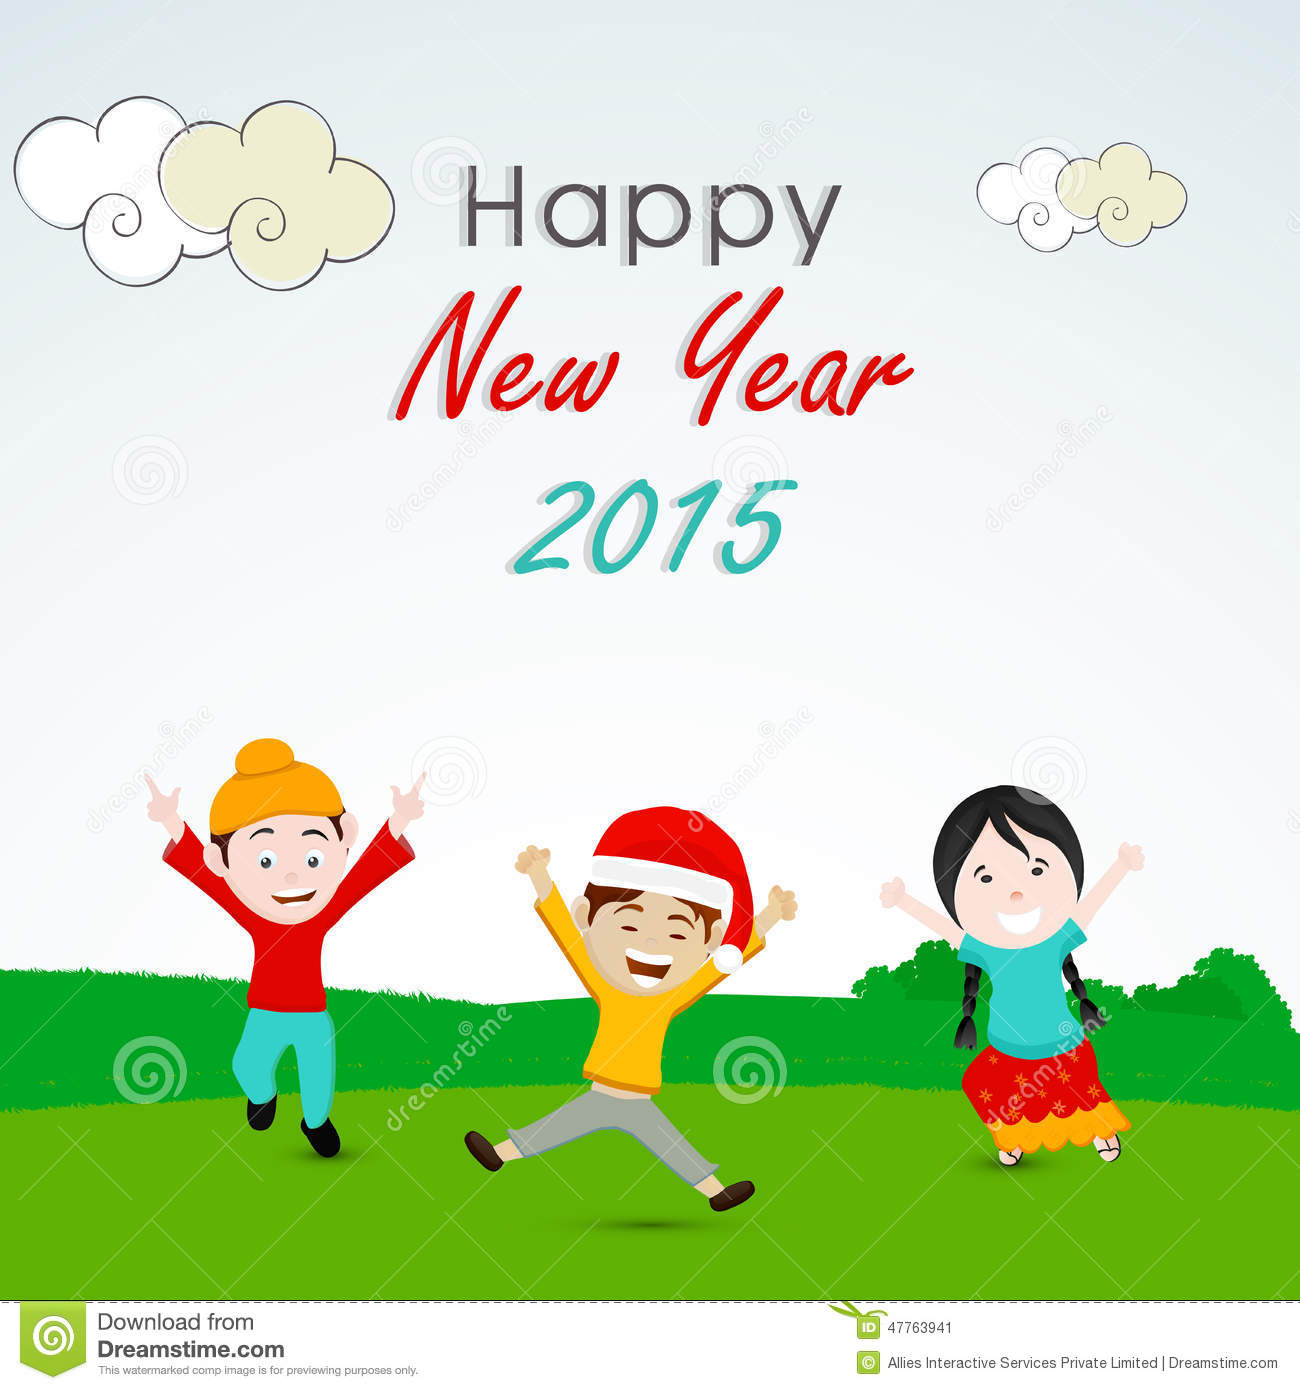 Greeting card design for happy new year 2015 celebrations stock greeting card design for happy new year 2015 celebrations kristyandbryce Choice Image